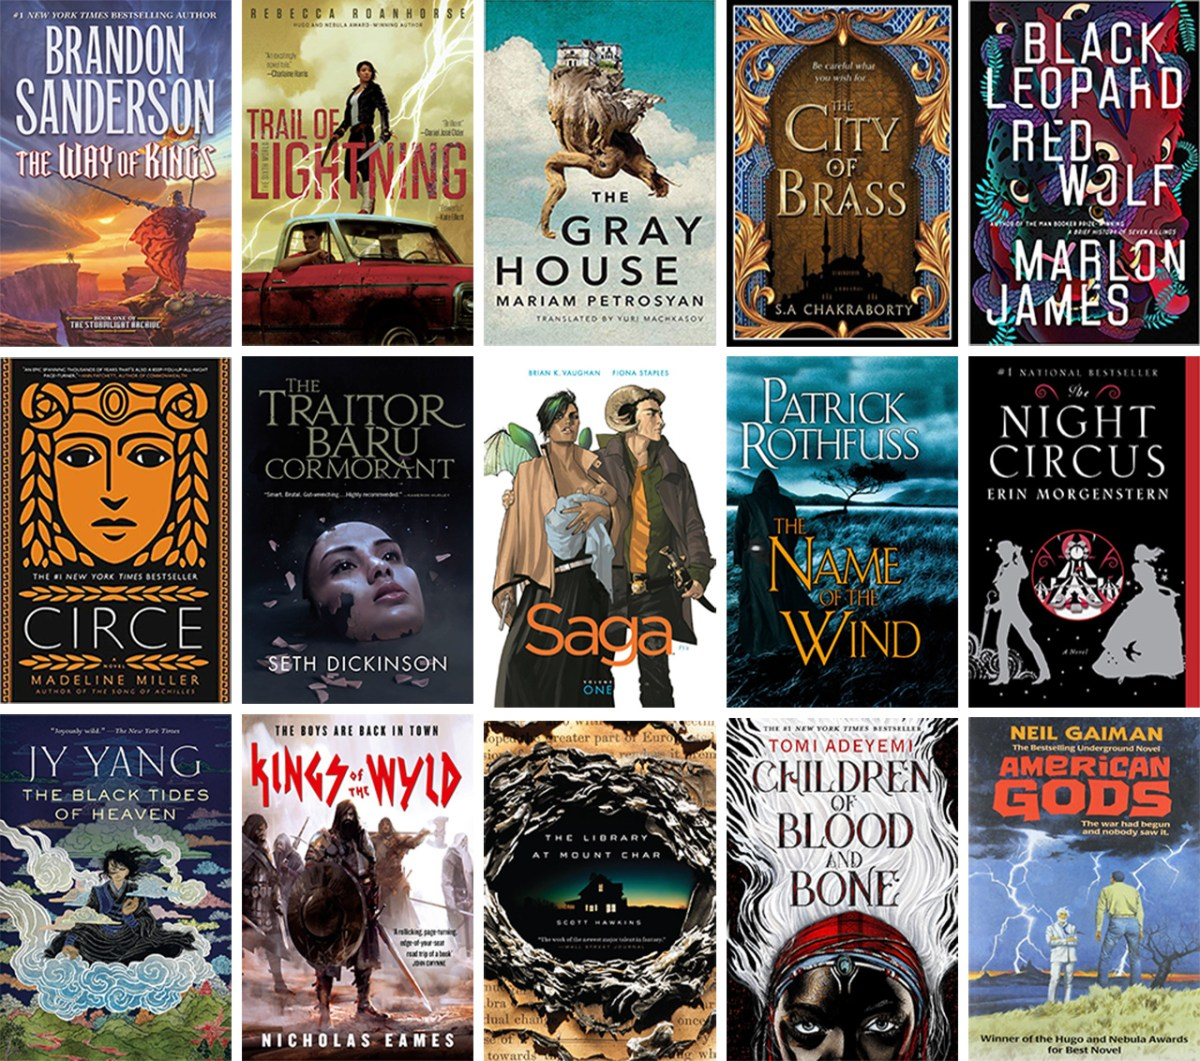 Here are the 100 Most Discussed Fantasy Books on Reddit